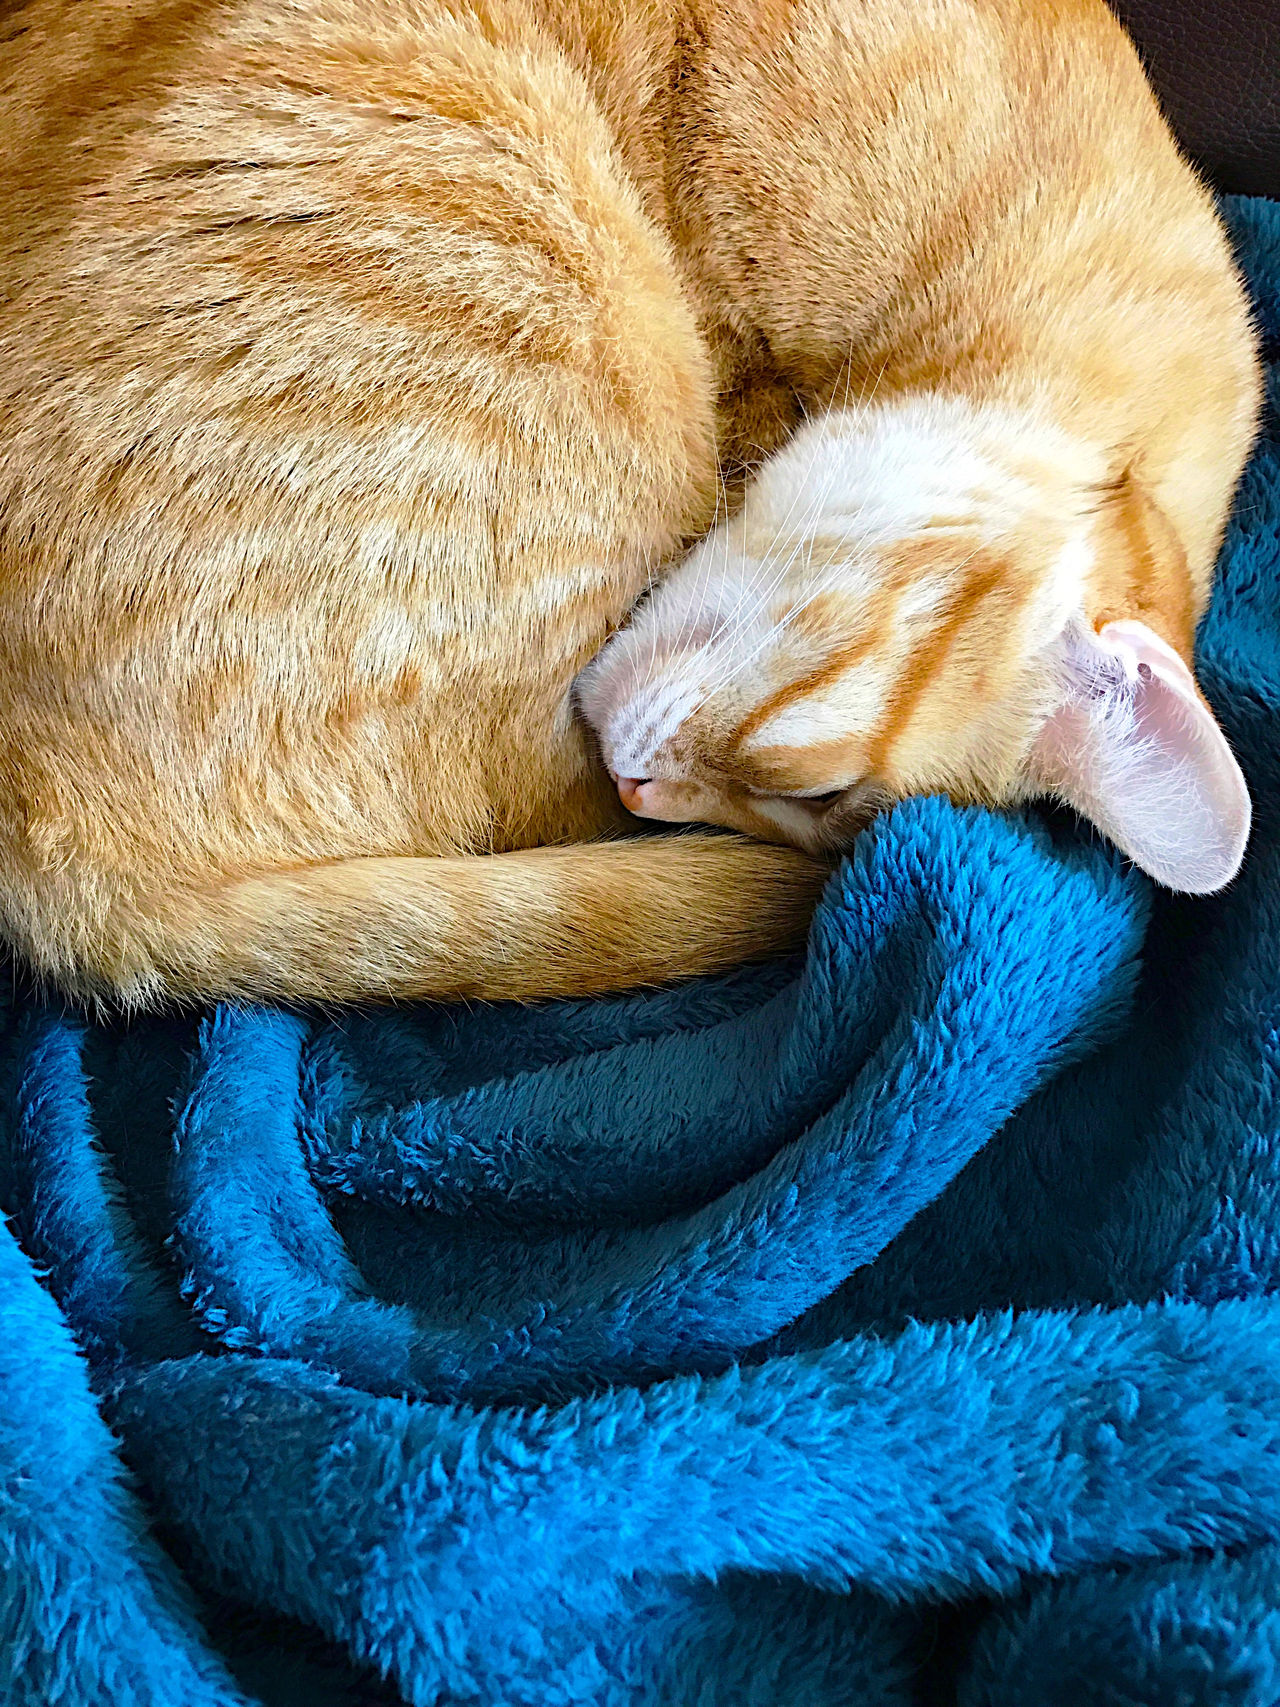 Orange cat curled up on blanket Animal At Home Blanket Blue Cat Close-up Cozy Curled Up Furry Indoors  Mammal Napping Natural Light No People Orange And White Tabby Overhead Pampered Pet Pet Phone Camera Relaxed Sleeping Soft Textures Vertical Warm